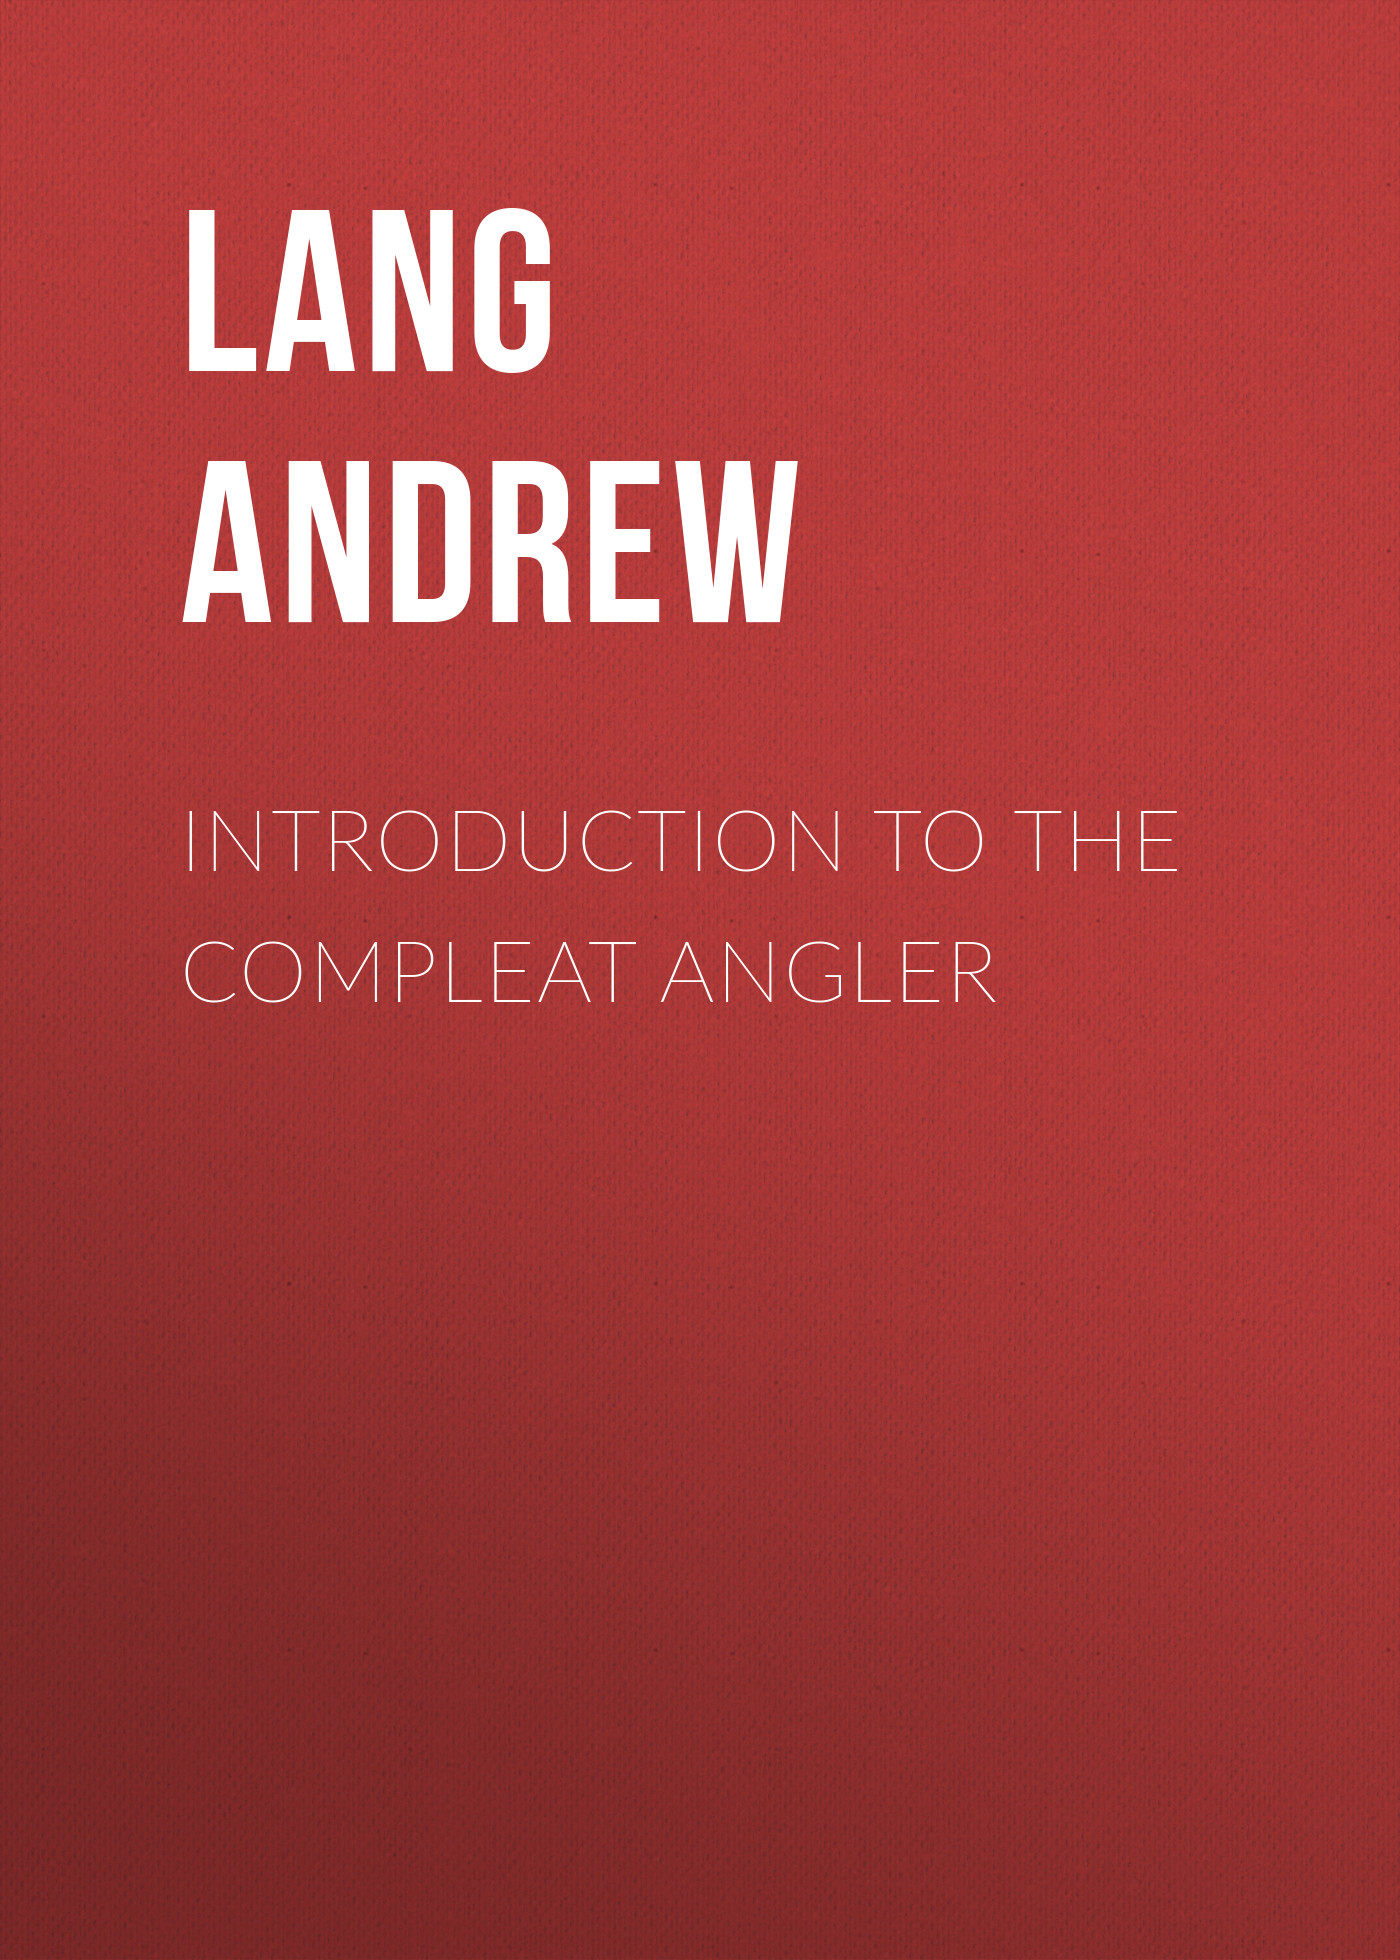 Lang Andrew Introduction to the Compleat Angler